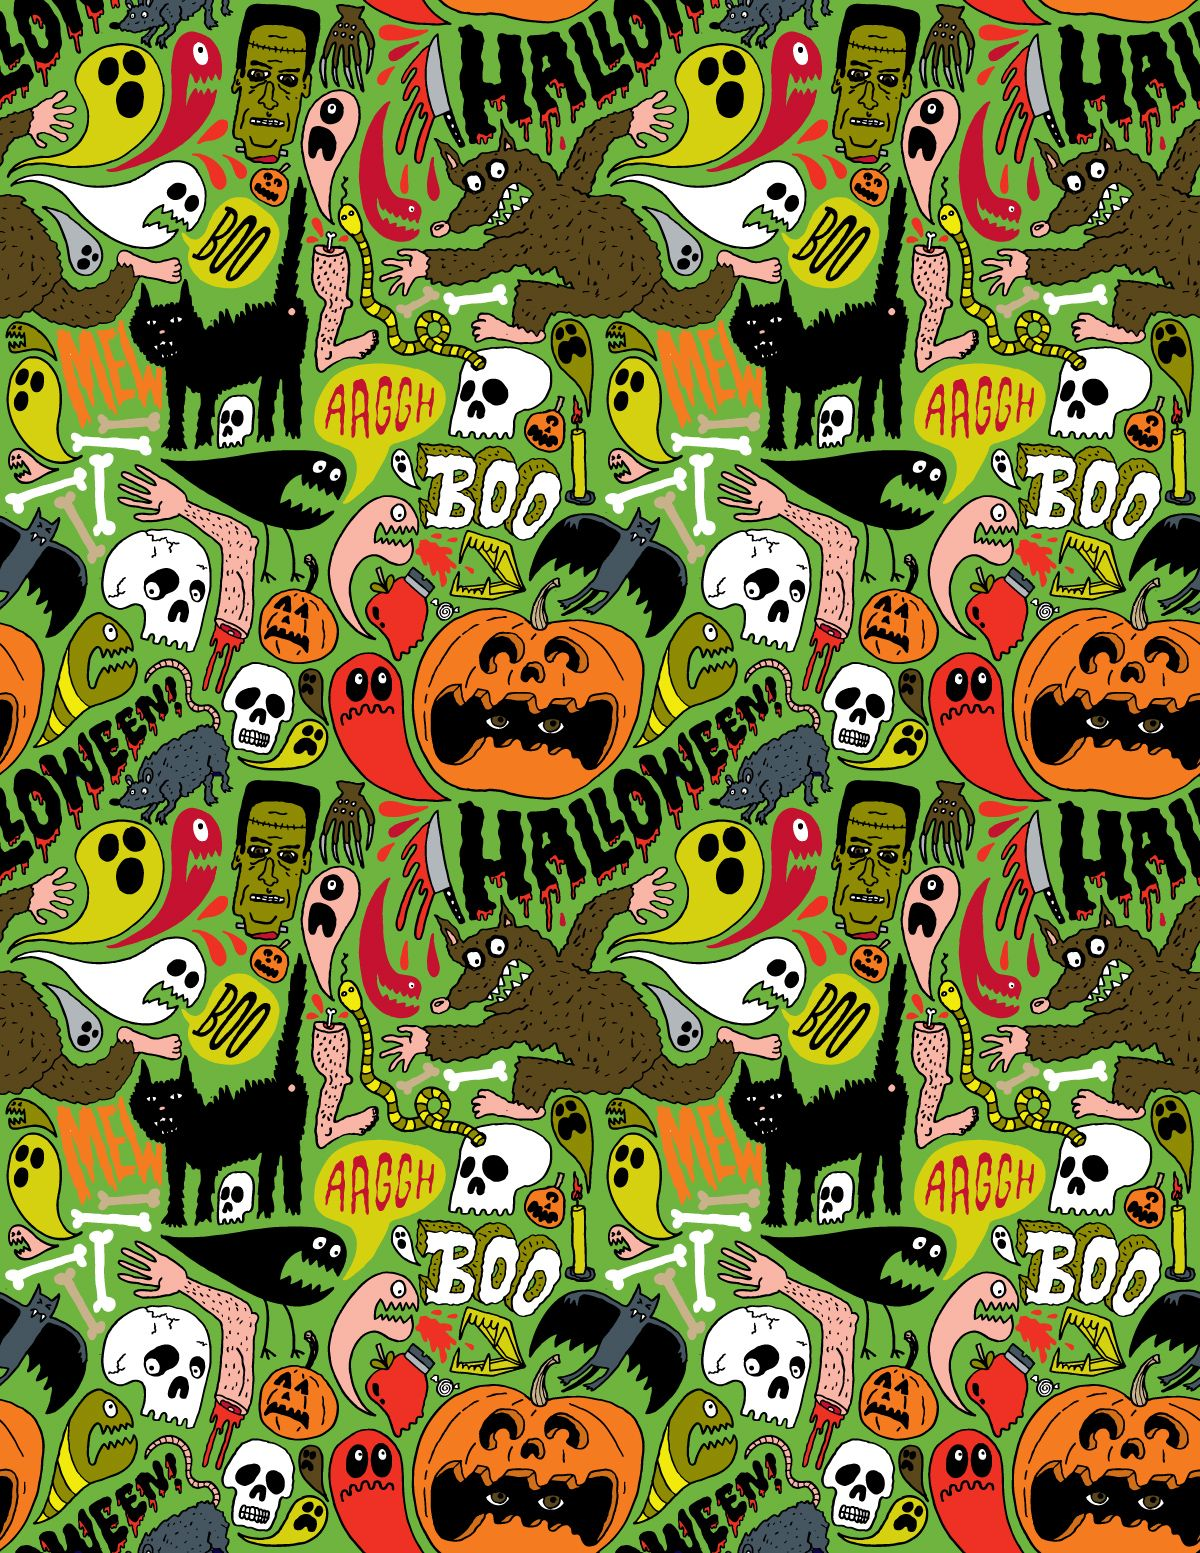 Fits As All Cell Phone Wallpaper Backgrounds Halloween Wallpaper Vintage Halloween Halloween Backgrounds